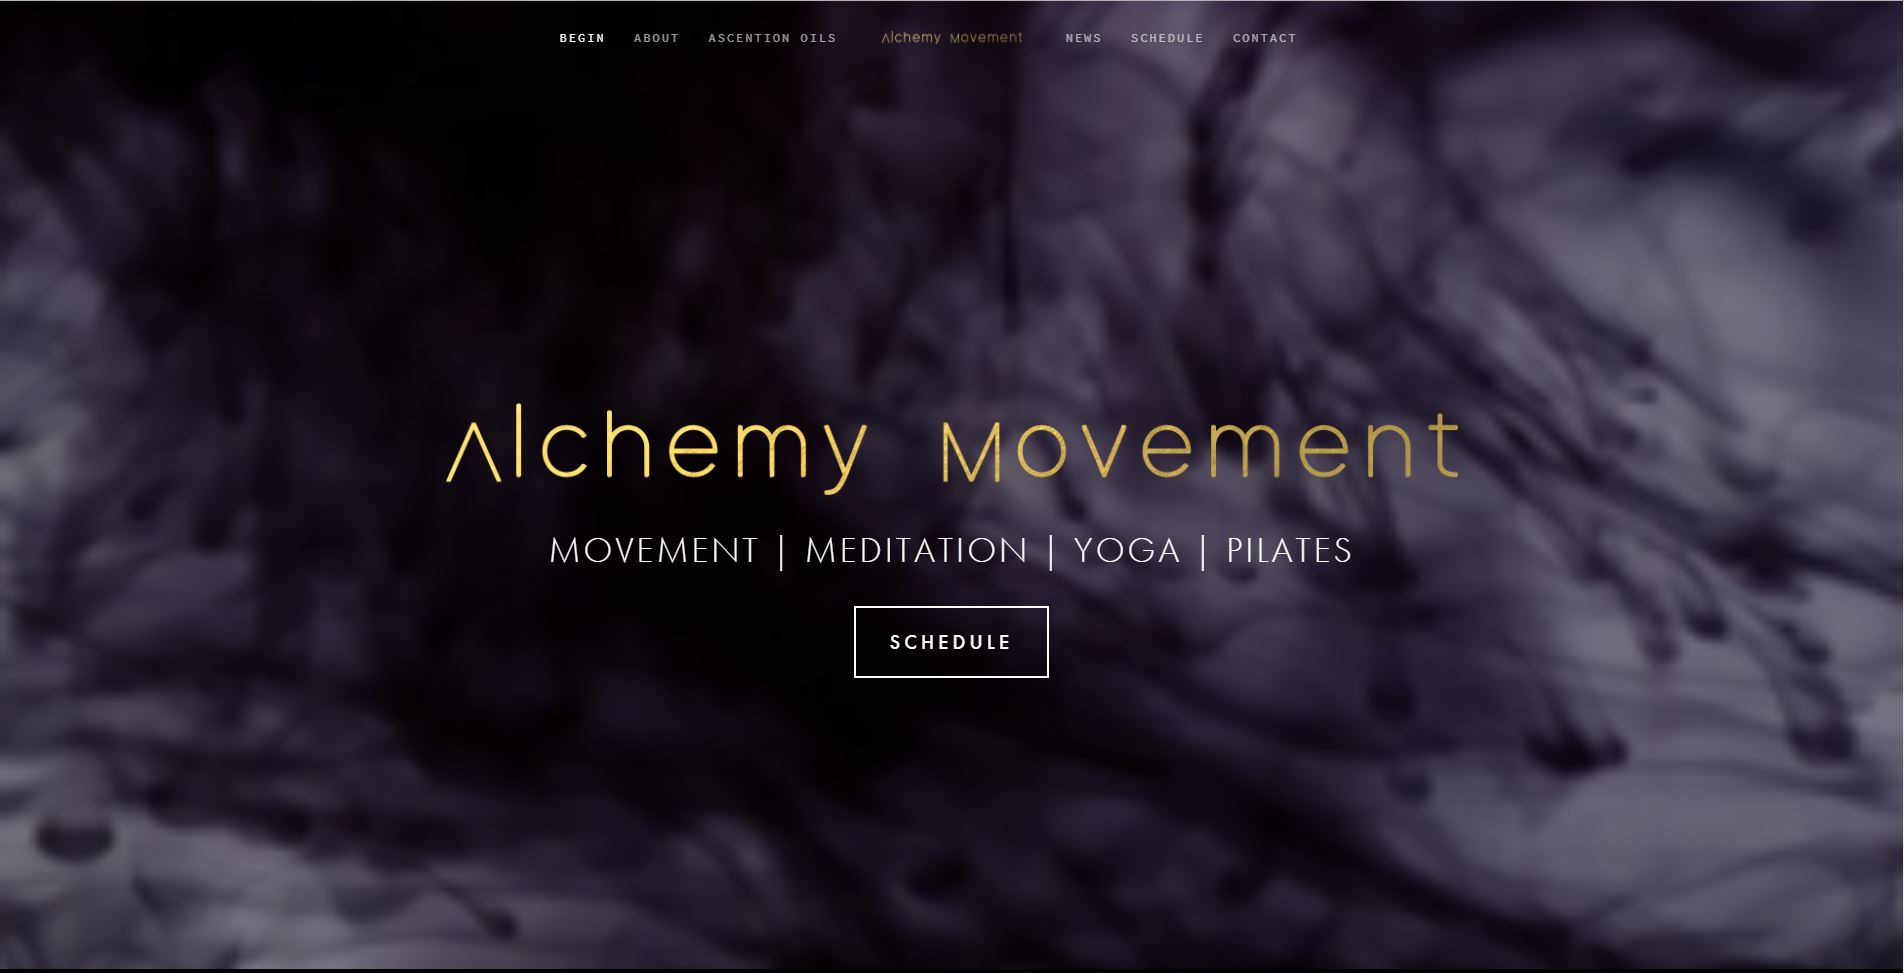 alchemy movement website.JPG